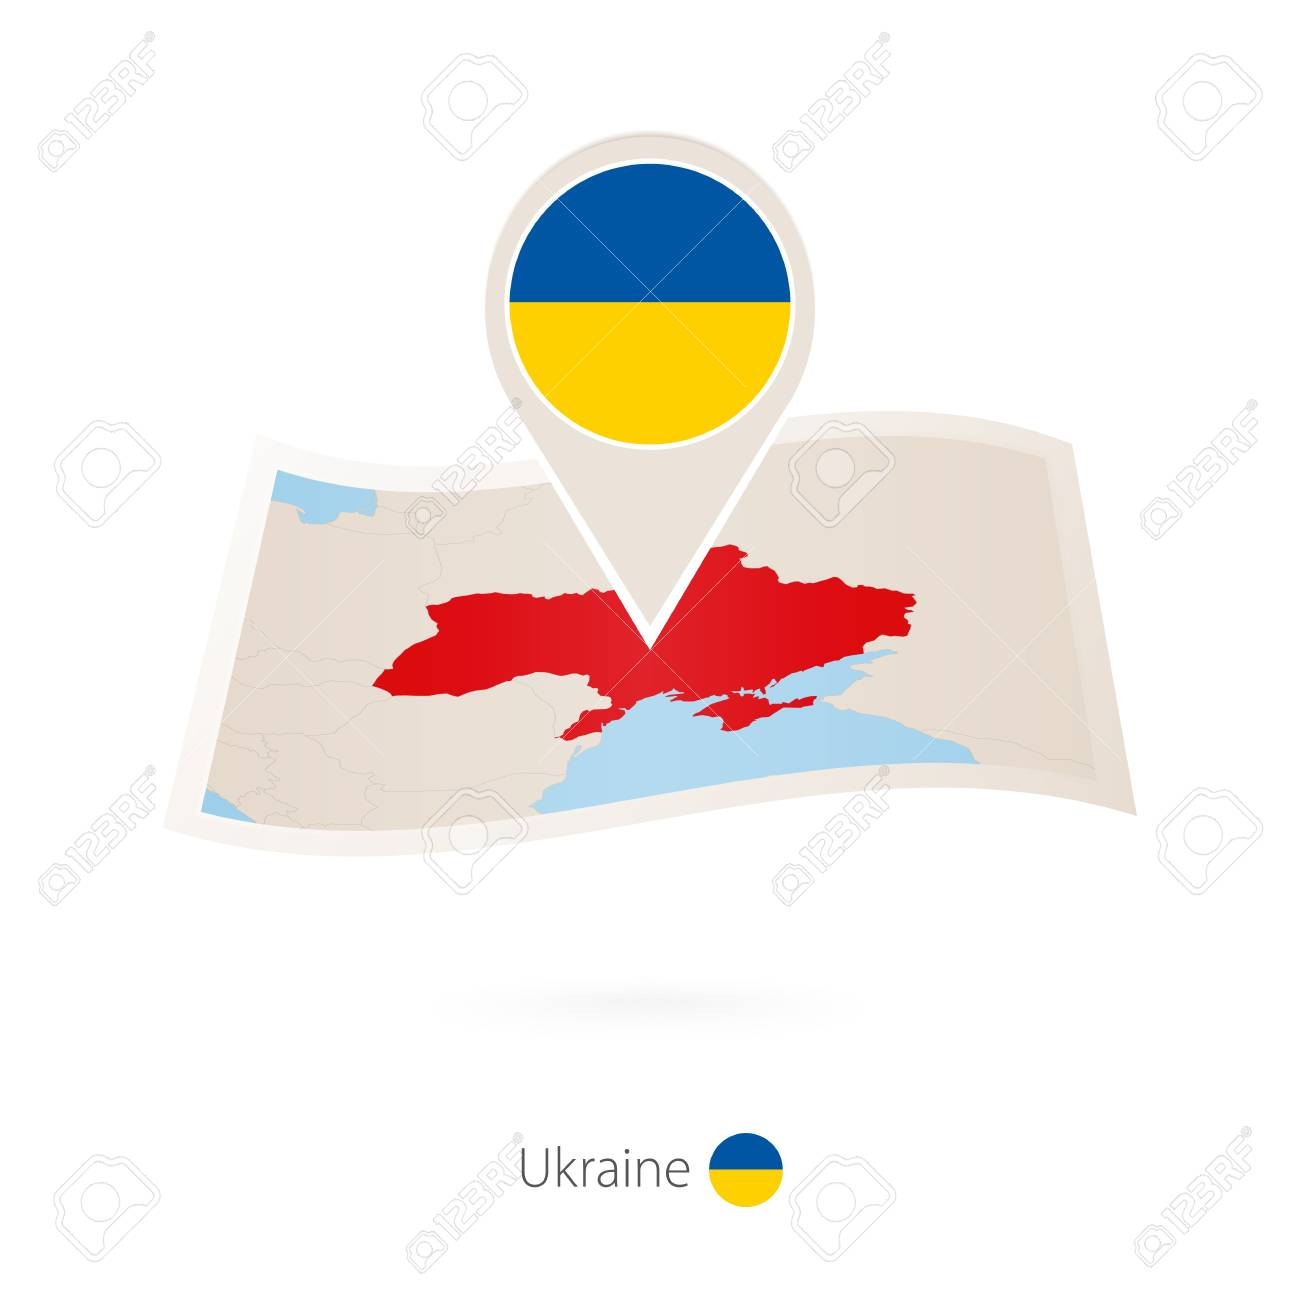 folded paper map of ukraine with flag pin of ukraine vector rh 123rf com Folded American Flag Folded Flag and Soldier